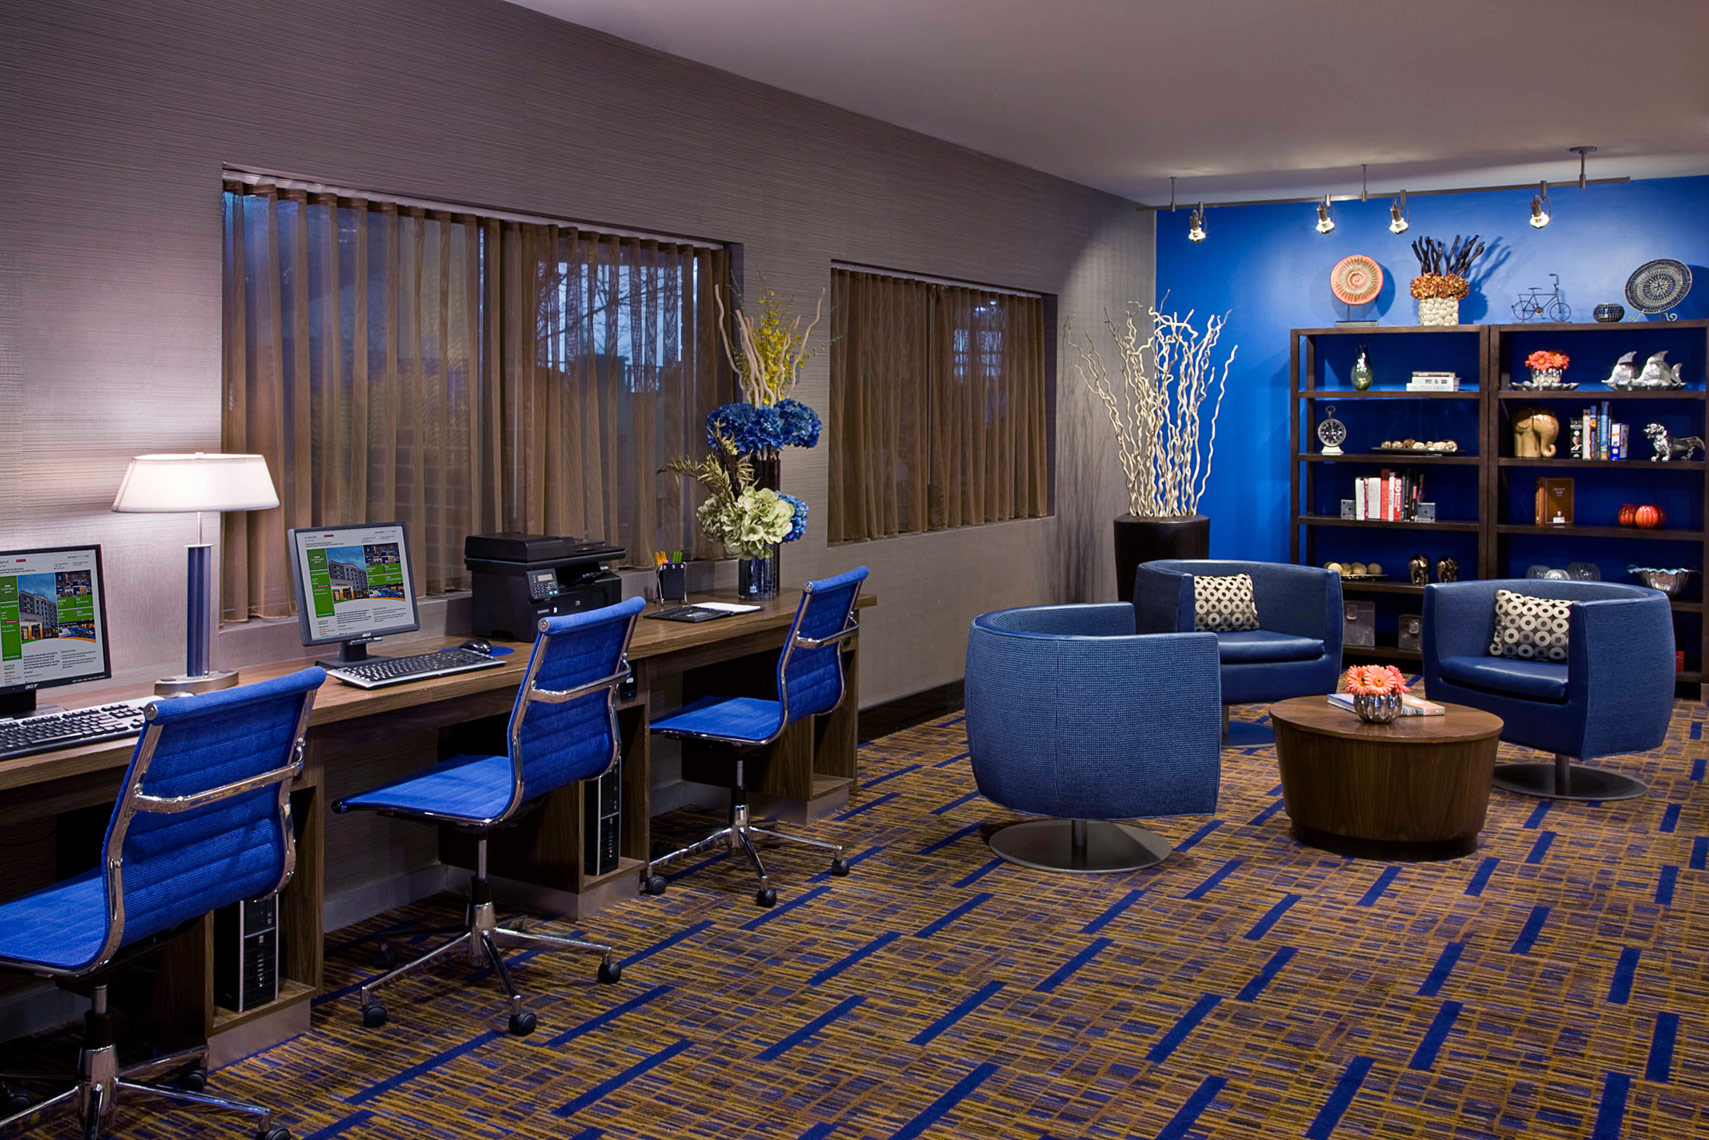 Hospitality-Hotel-Marriott-Courtyard-Busness-Library